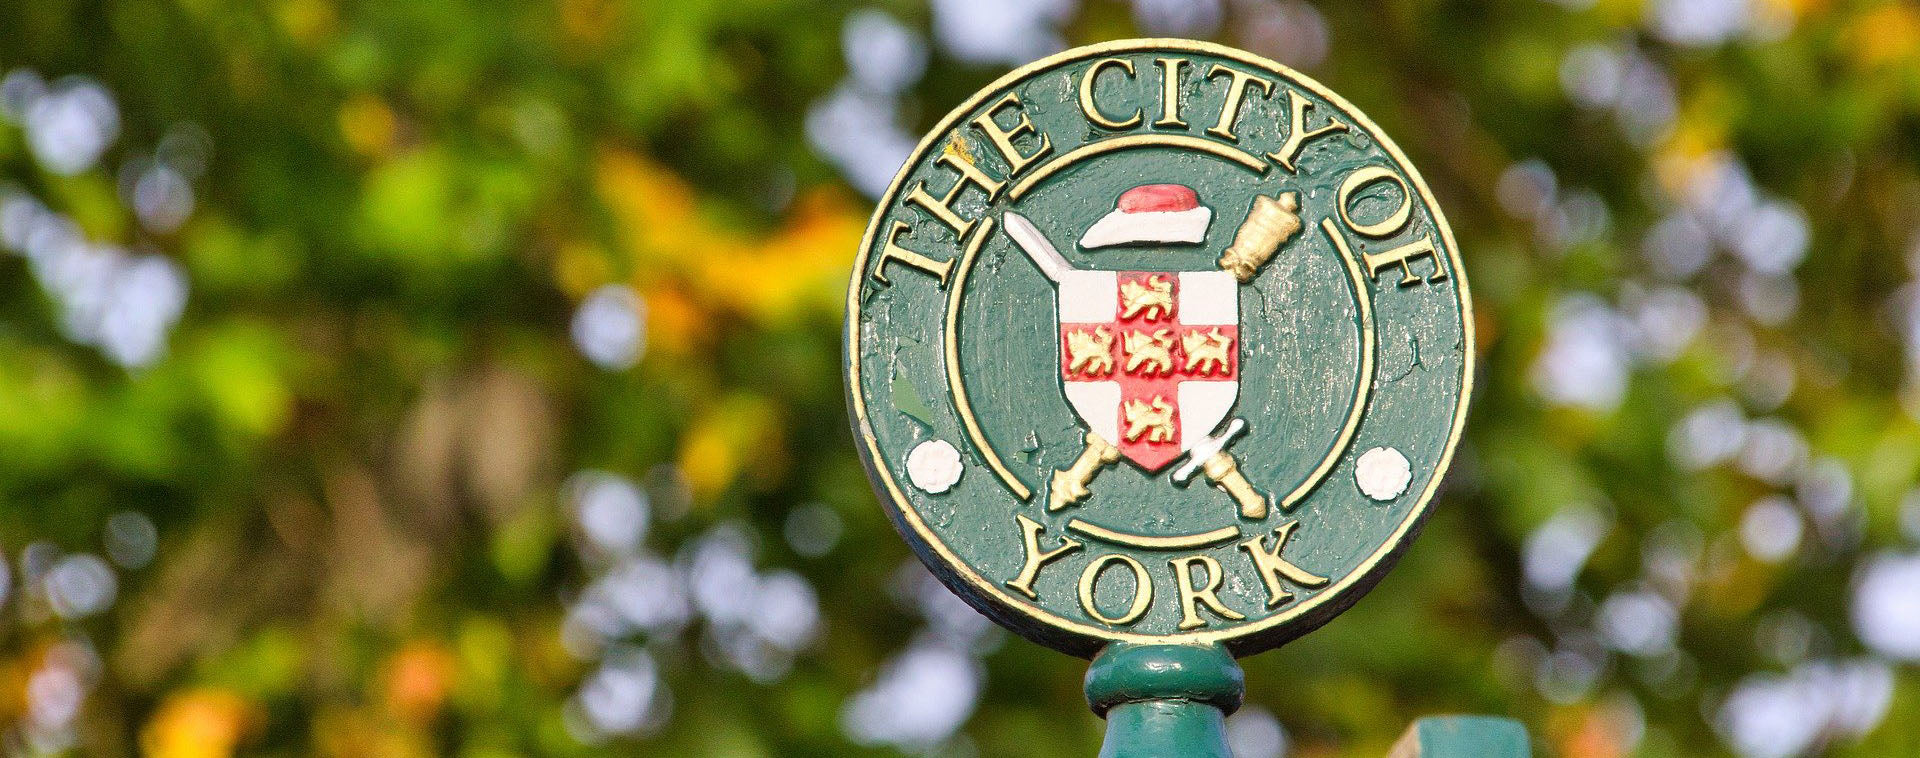 Quirky Treasure Trails - Prepare to lick your lips as you explore the York Chocolate and Sweet Trail.